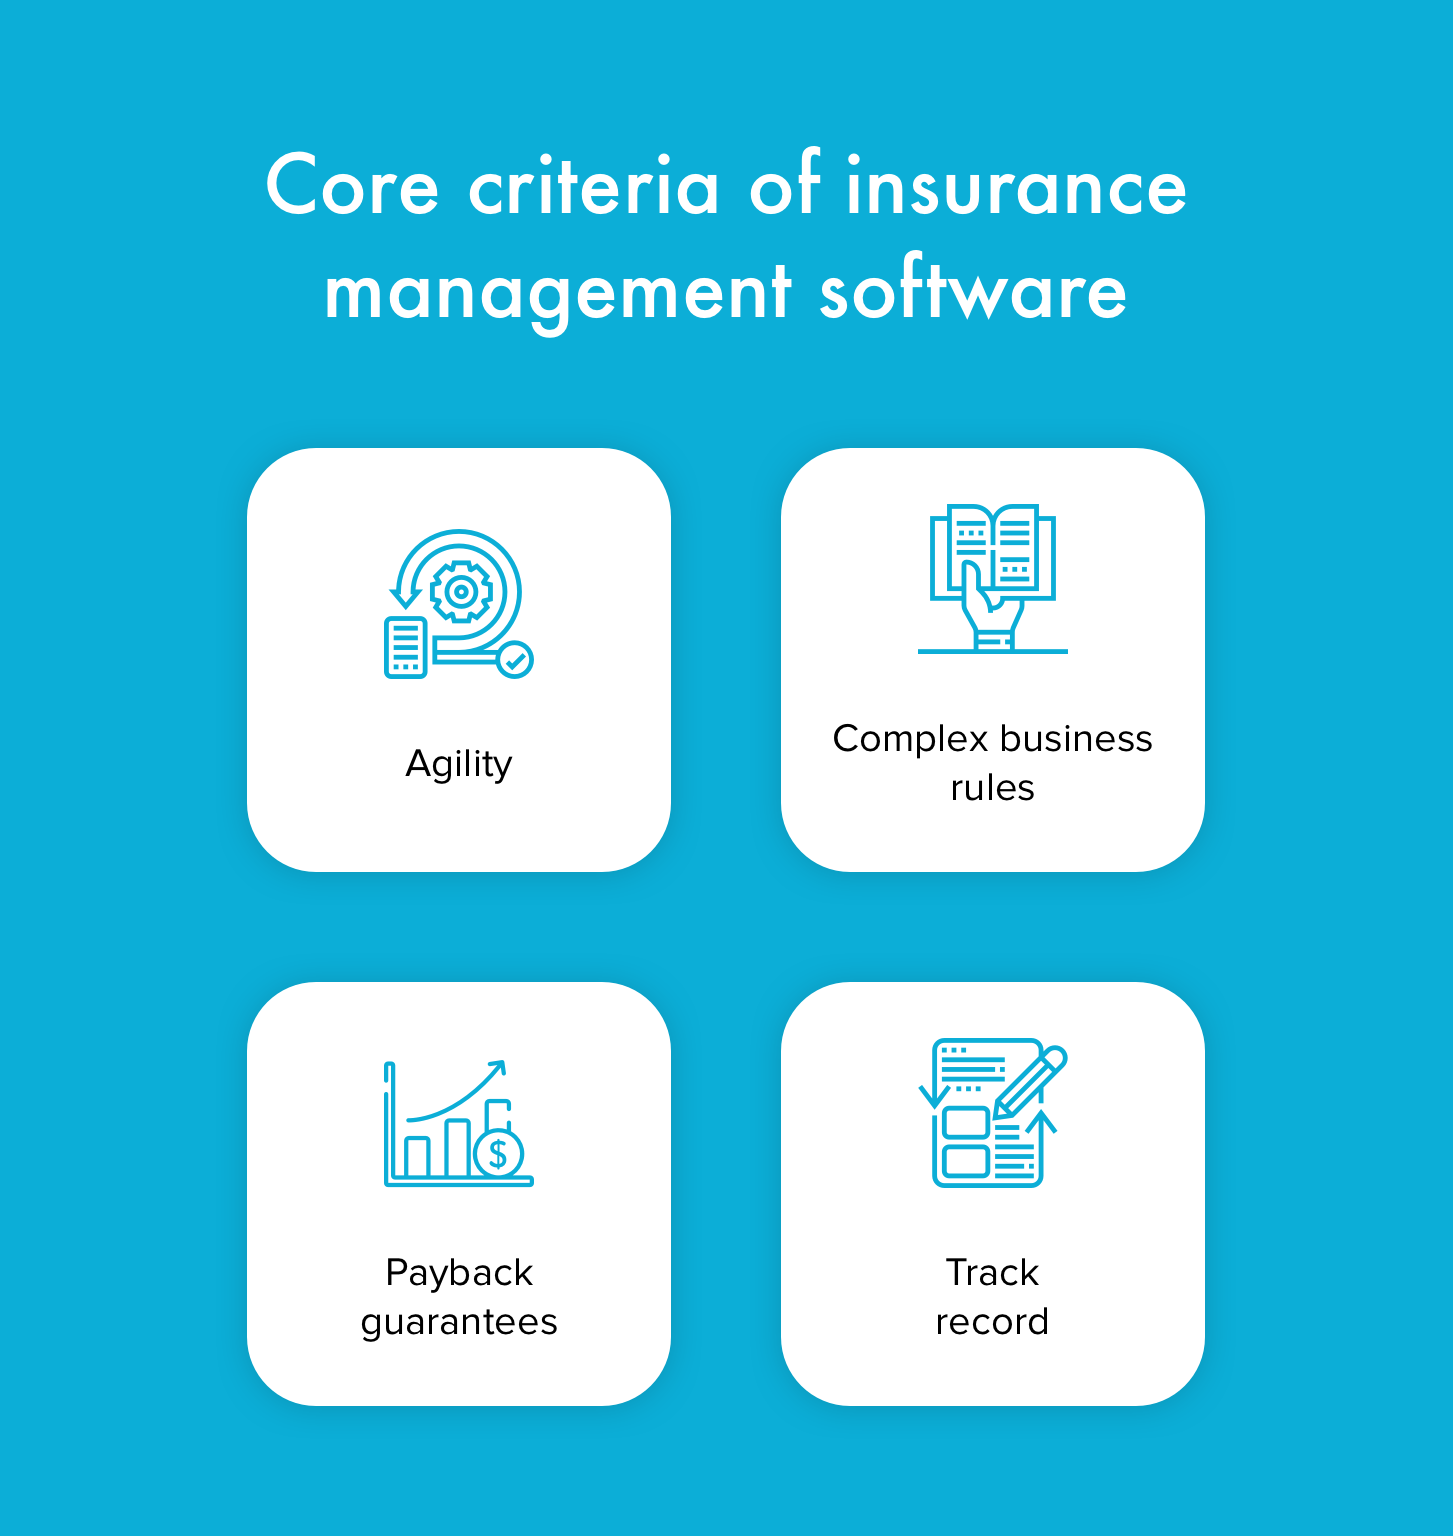 Core criteria of insurance management software